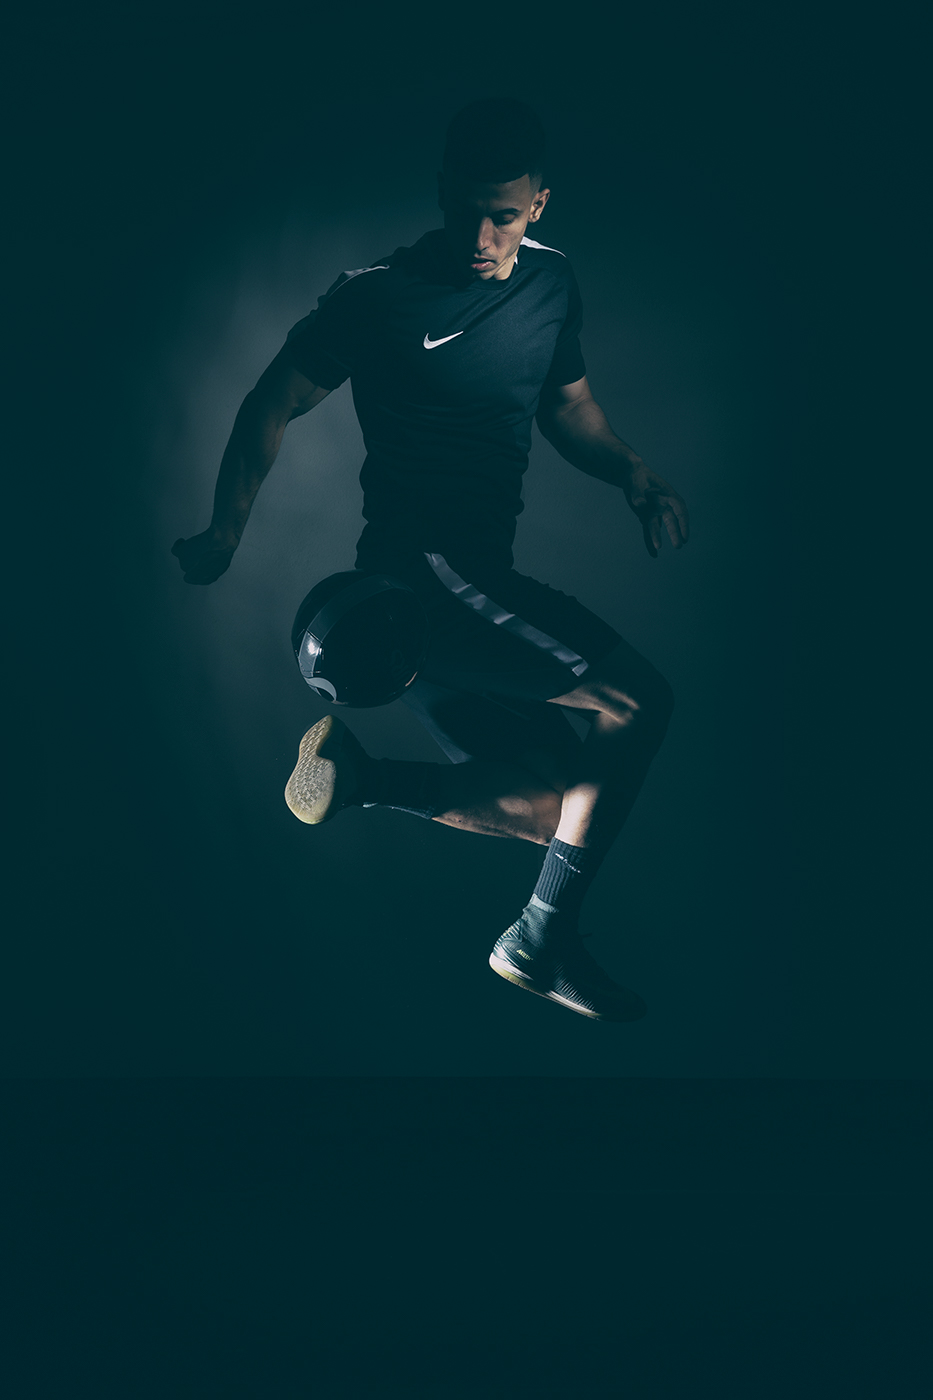 Soccer player doing a ball trick indoors with dramatic lighting